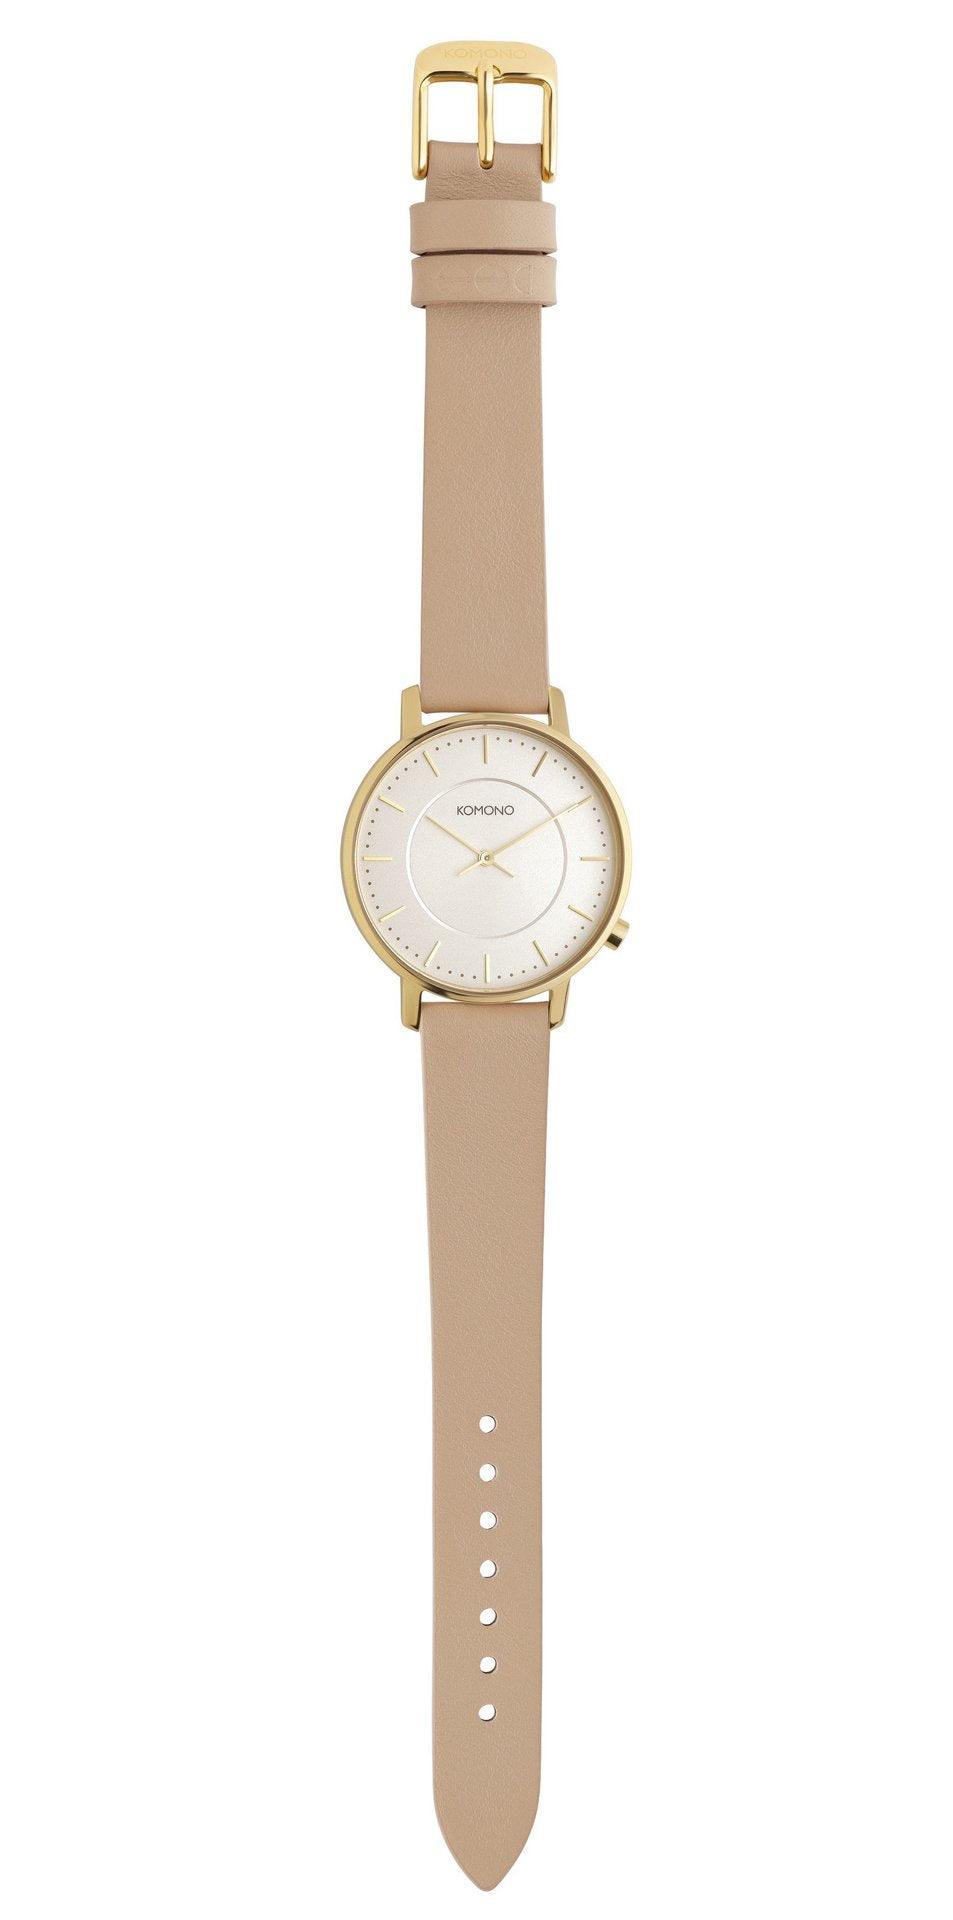 Harlow Pastel Cinnamon Watch